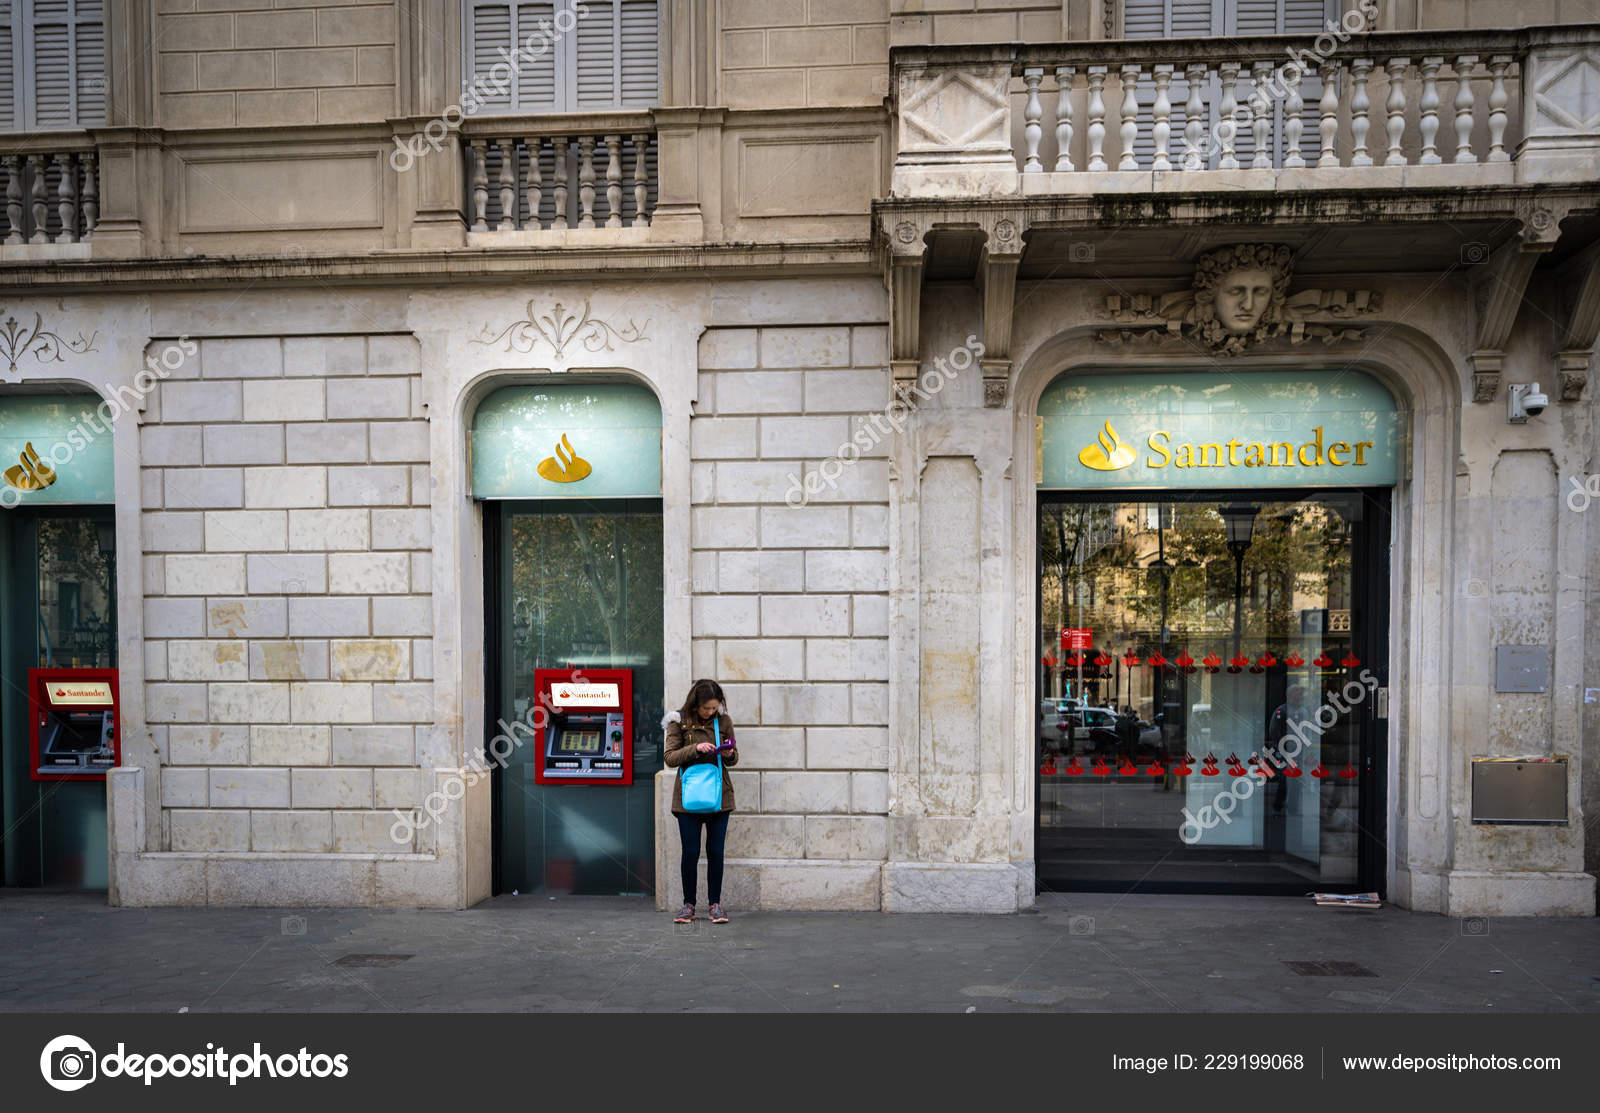 Barcelona, Spain - December 2018: Unnidentified person uses